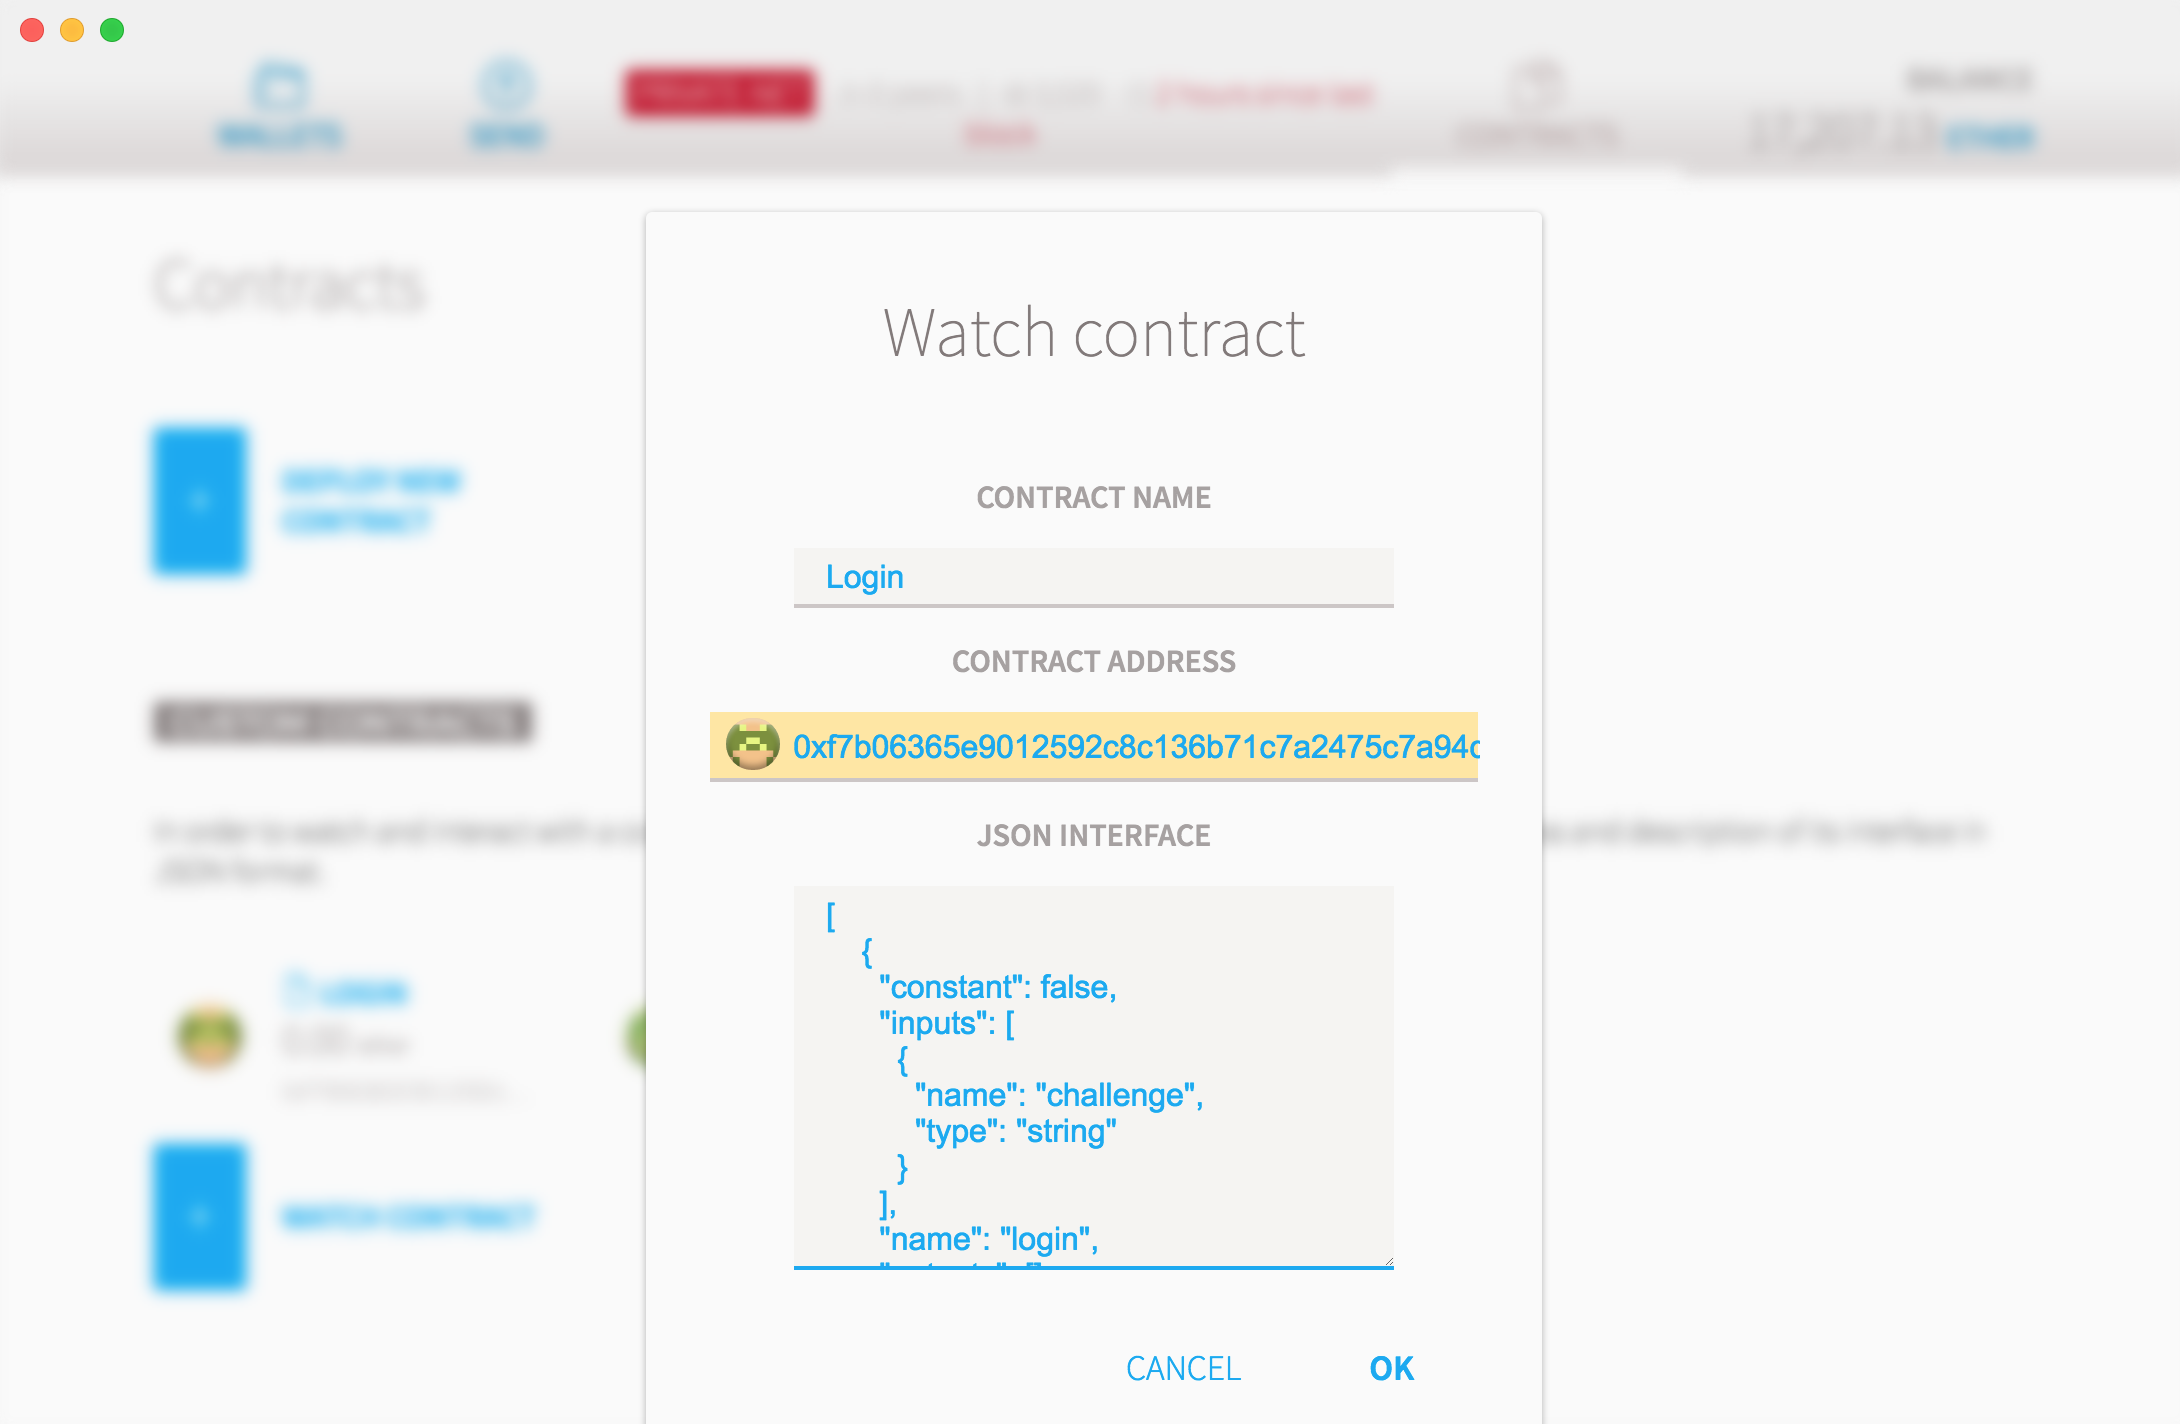 Watch contract